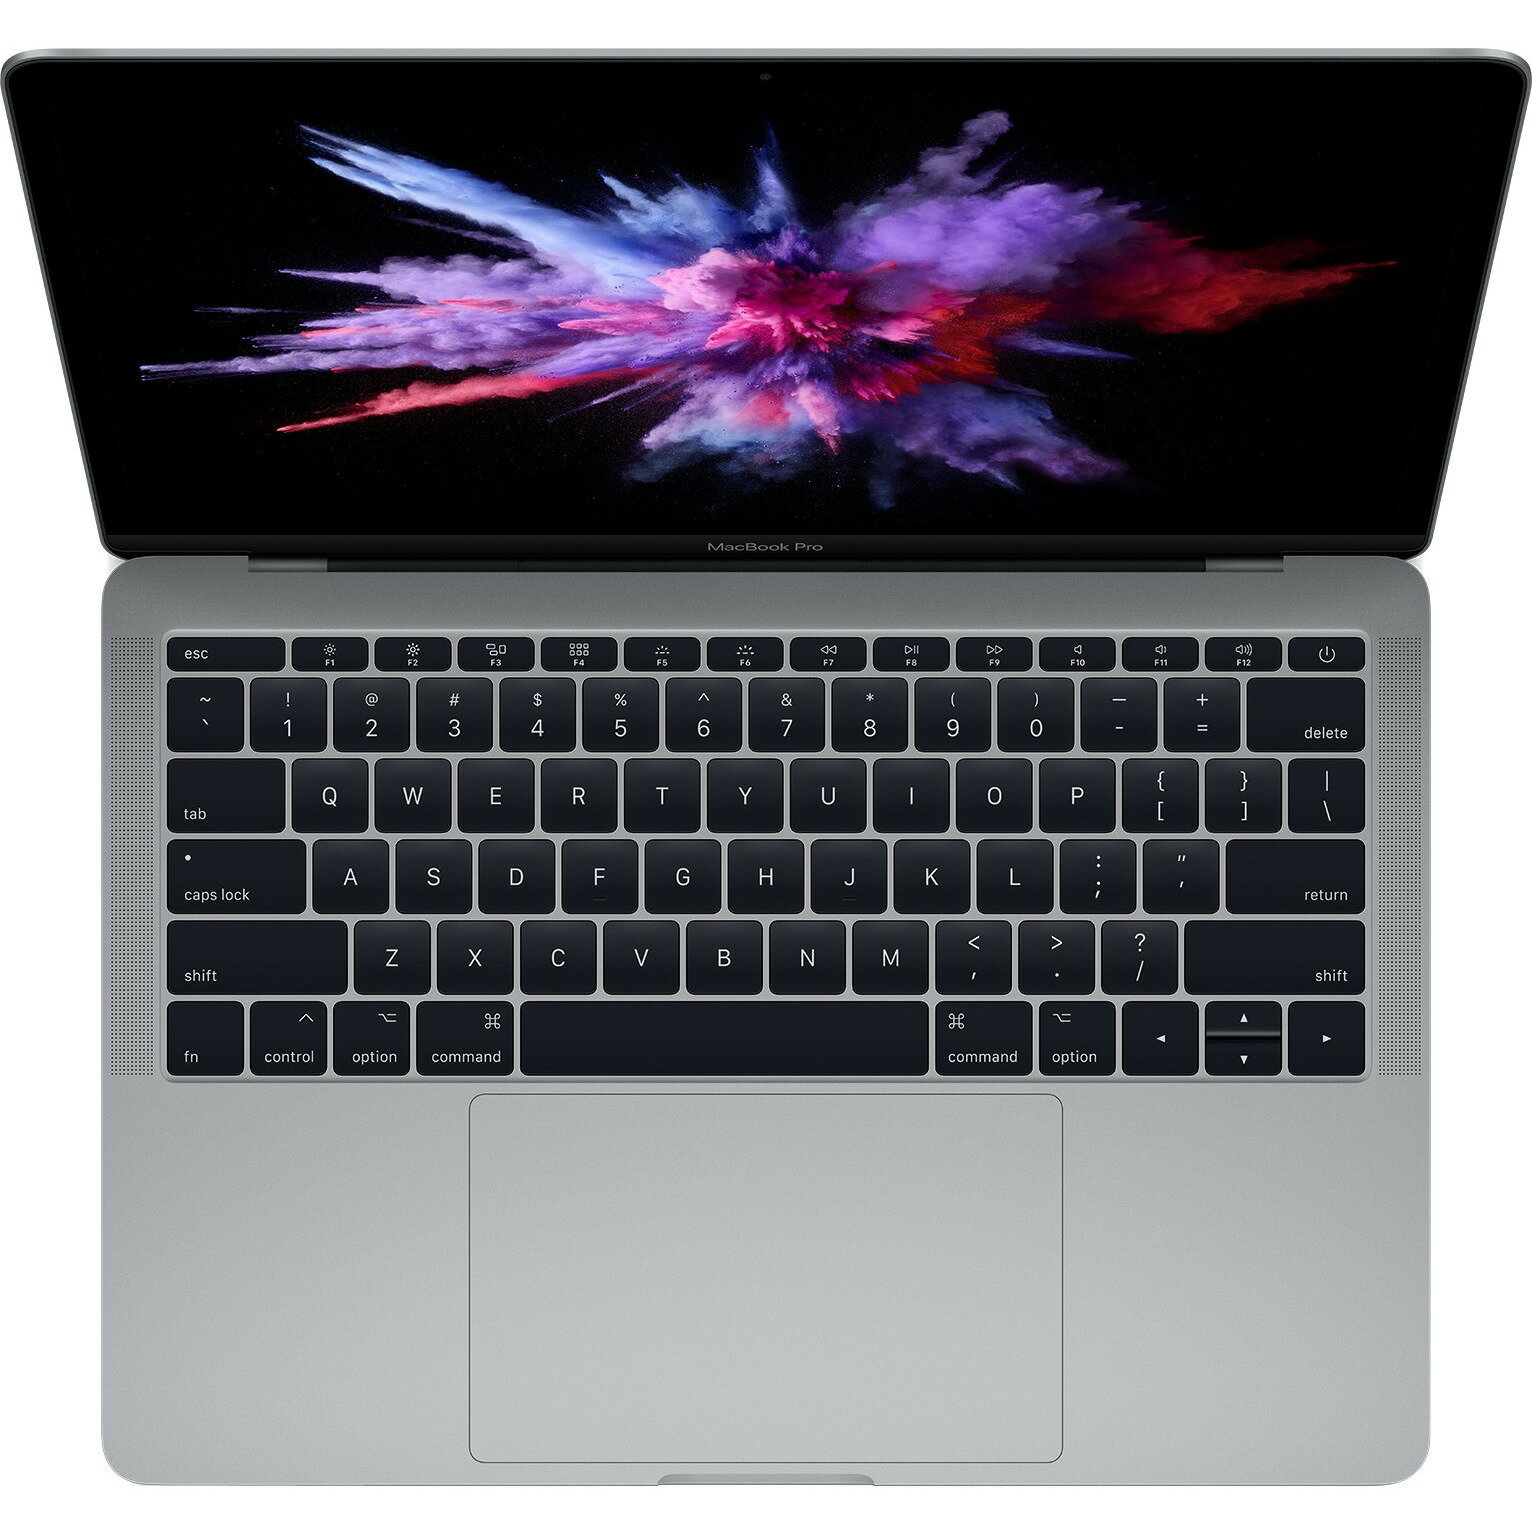 "Apple MacBook Pro MPXQ2LL/A 13.3"" LCD Notebook - Intel Core i5 (7th Gen) Dual-core (2 Core) 2.30 GHz - 8 GB LPDDR3 - 128 GB SSD - Mac OS Sierra - 2560 x 1600 - In-plane Switching (IPS) Technology - Space Gray - Intel Iris Plus Graphics 640 LPDDR3 - Blueto 0"